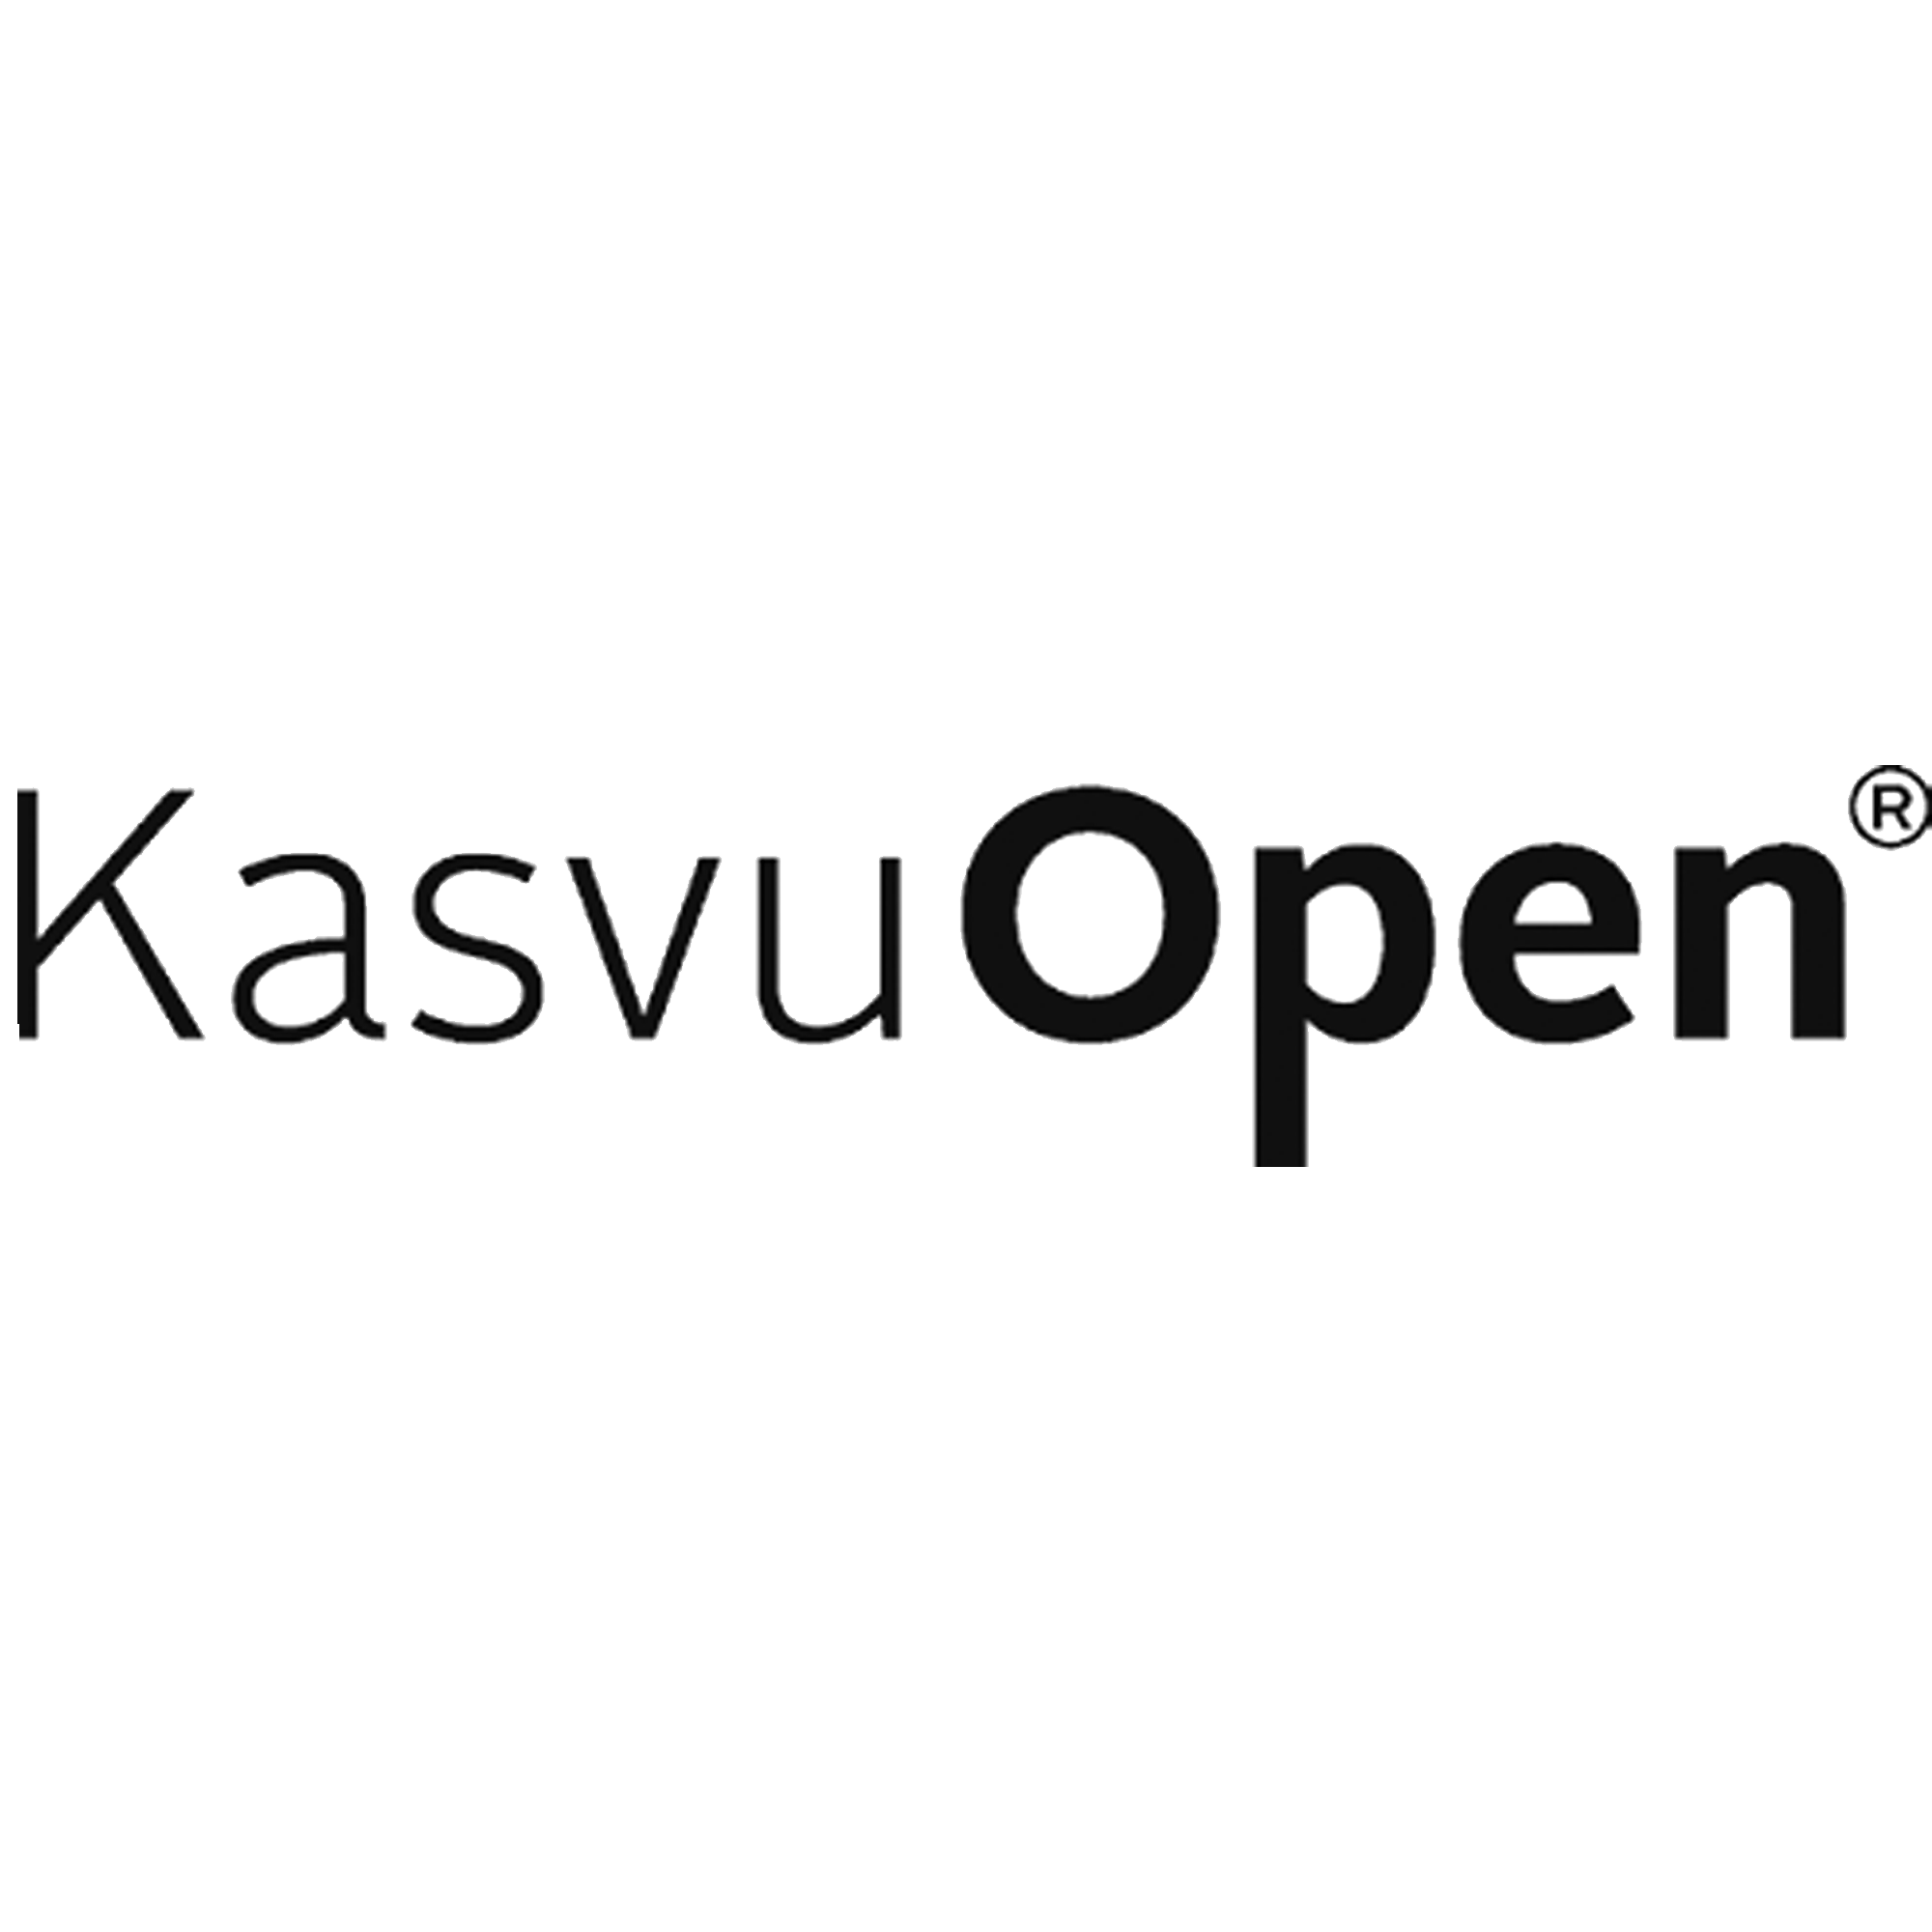 kasuopen.png